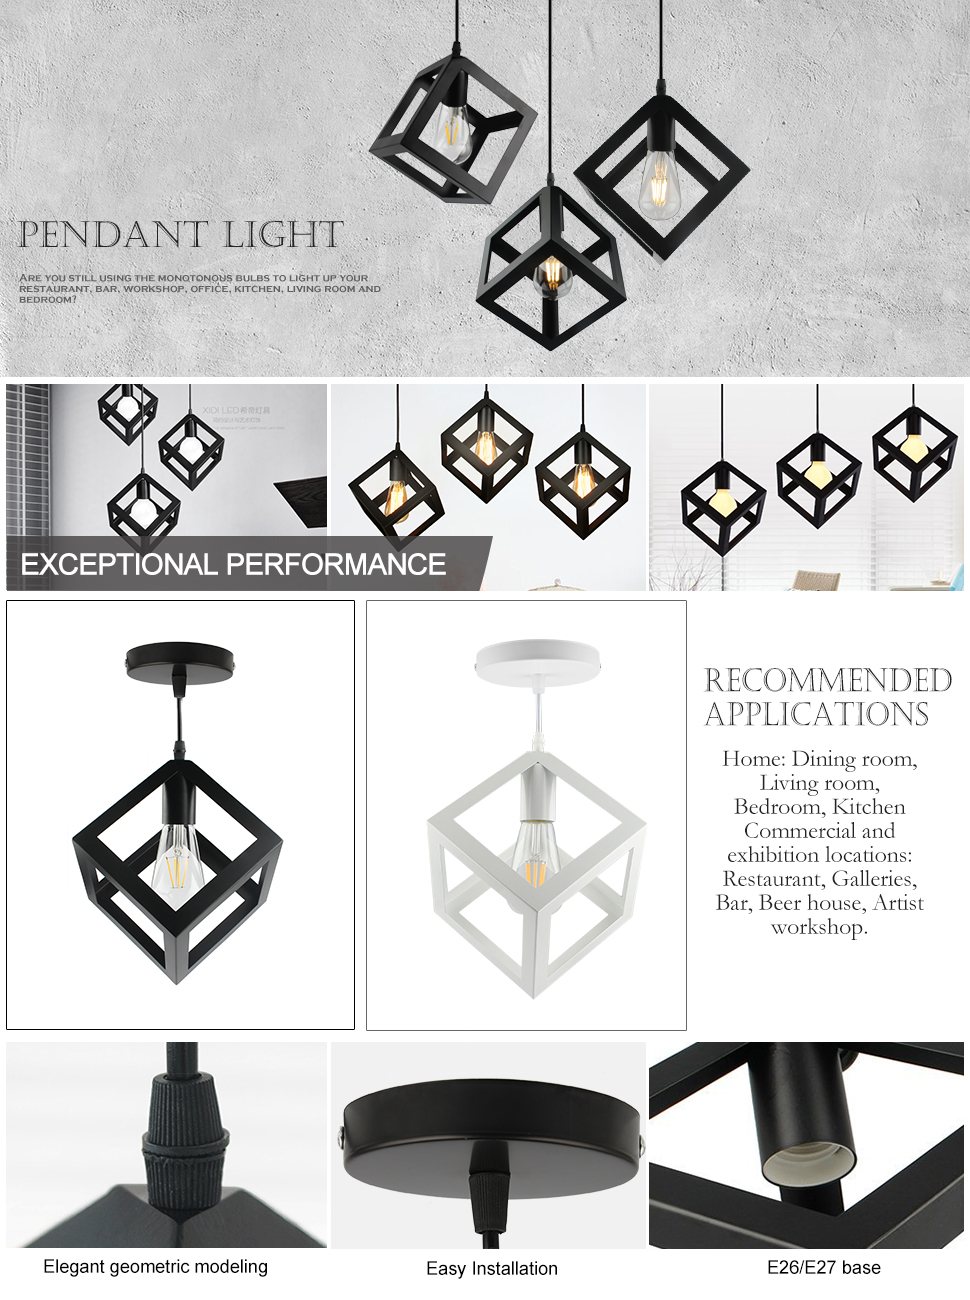 B2ocled Pendant Light Nordic Style Geometric Hanging Lamp White Basic Household Wiring Fixture Elegant And Beautiful Shape Room Lighting It Can Create A Romantic Atmosphere Give Sparkle To Brilliant Evenings Iron Materials Reflecting The